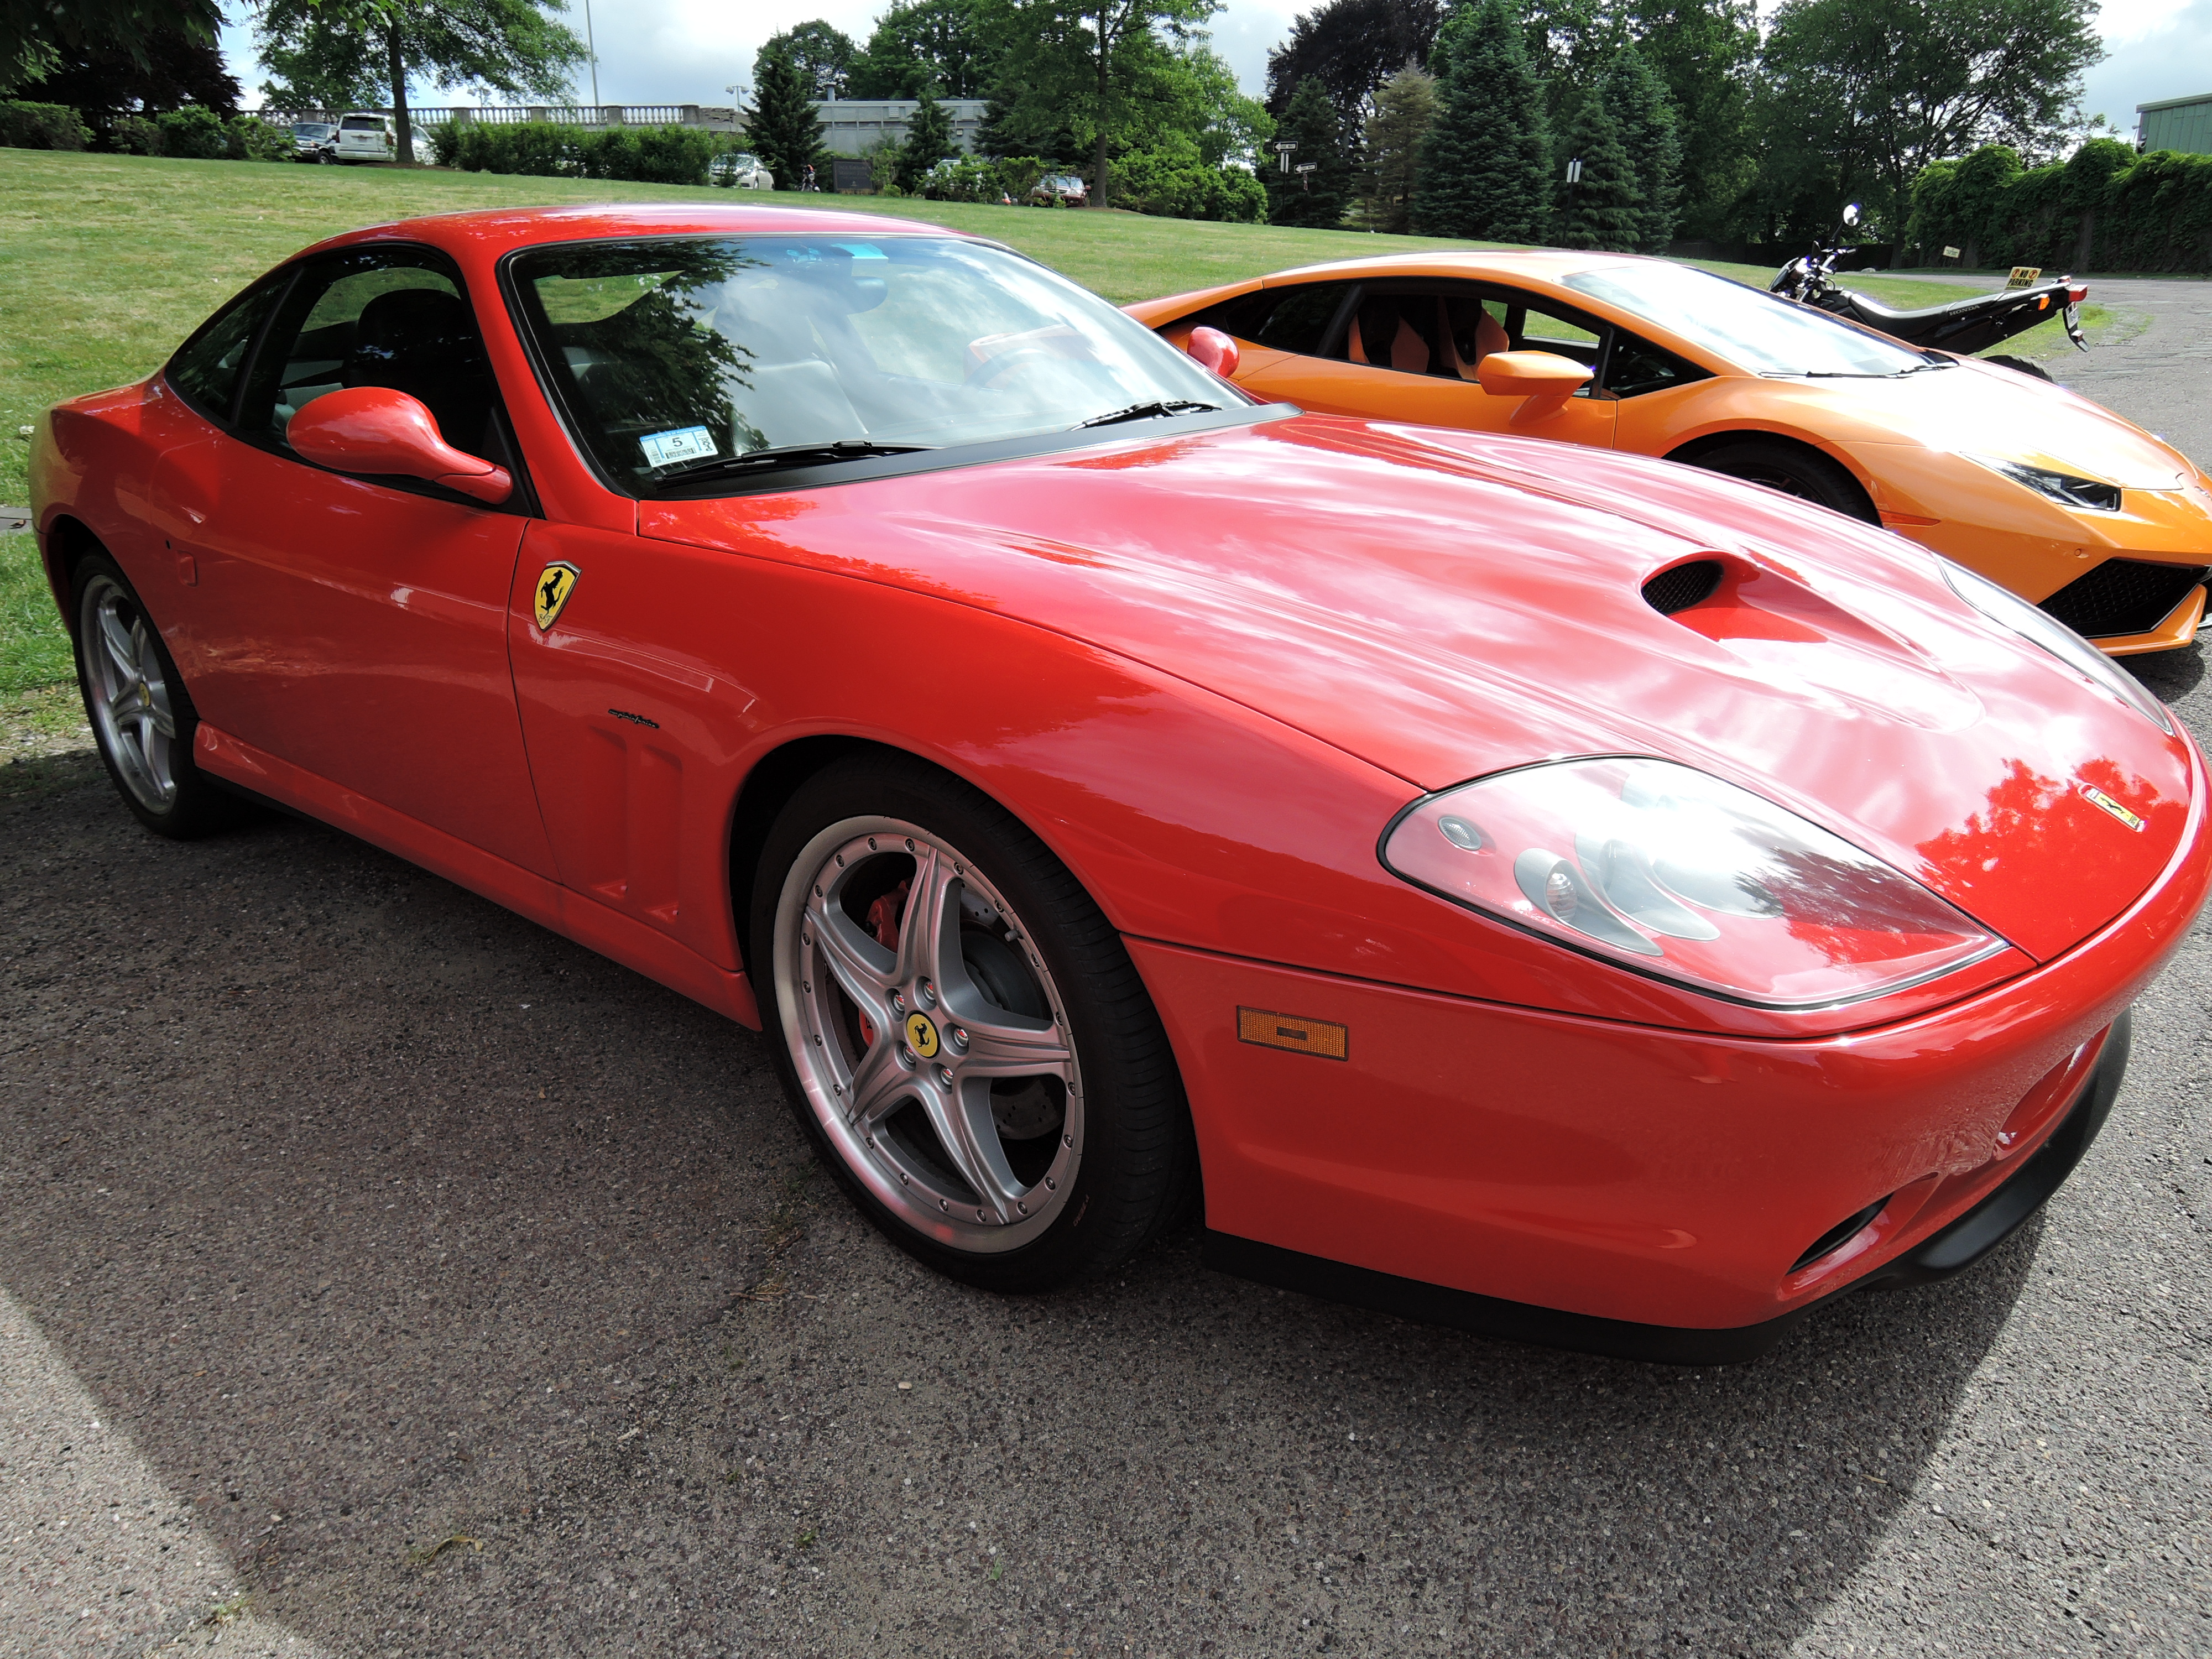 red 2004 Ferrari 575M - cars and coffee car show at larz Anderson museum of transportation